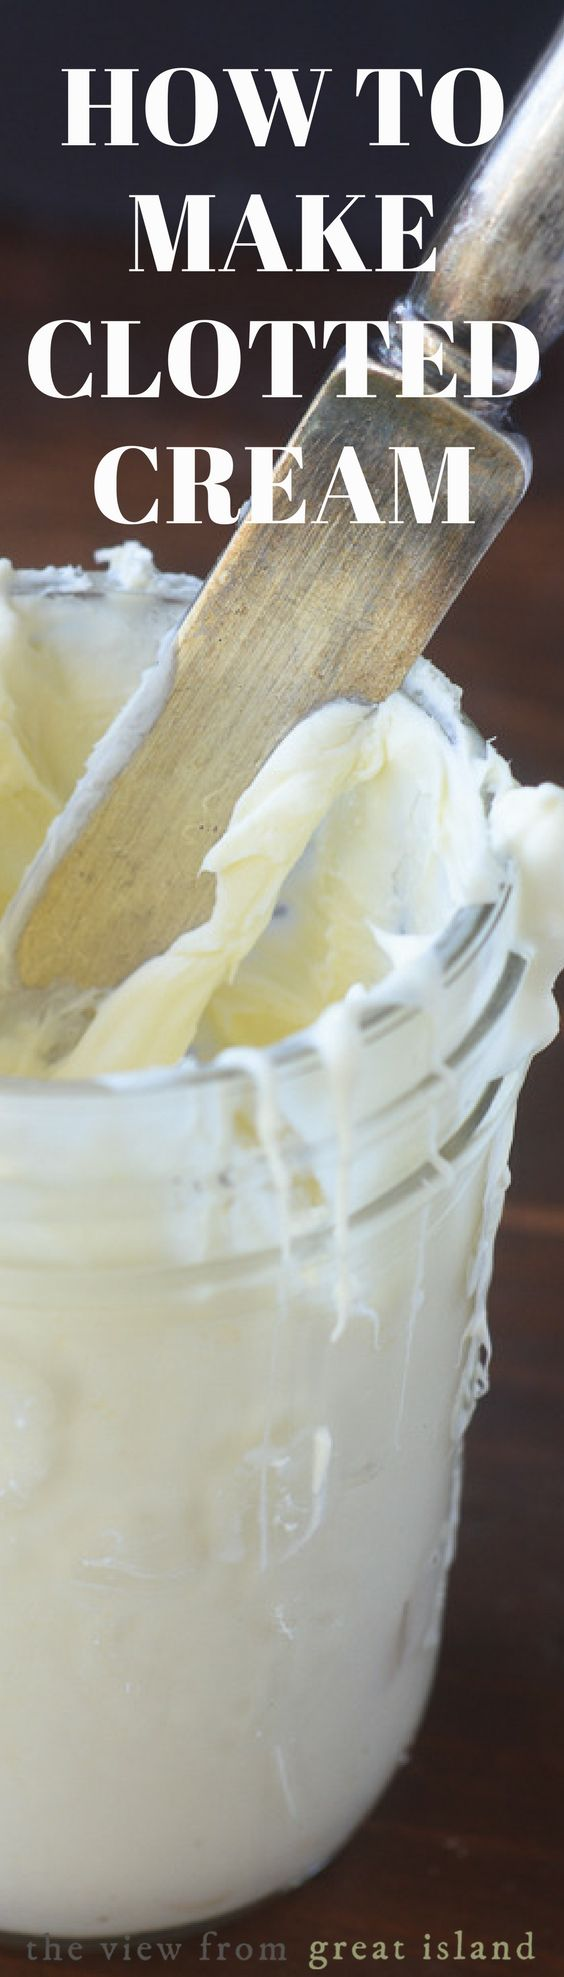 Homemade Clotted Cream ~ this luxurious and hard to find staple of afternoon tea can be made easily right in your own kitchen!   British   Afternoon Tea   Devon Cream   Scones  